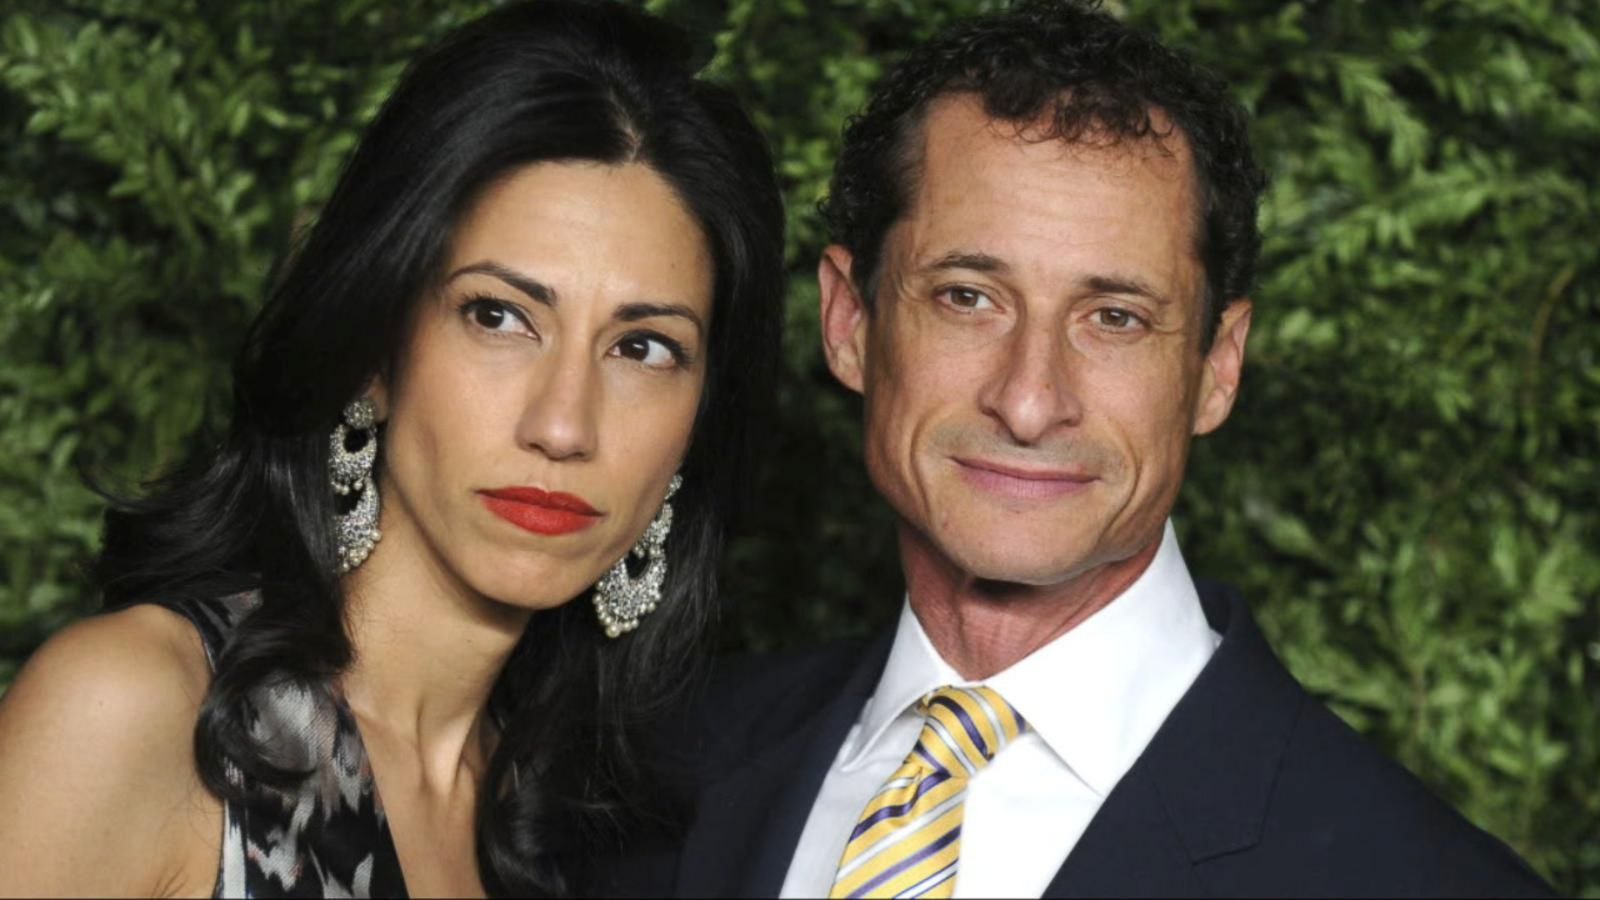 VIDEO: Huma Abedin Splits With Anthony Weiner Following Another Sexting Scandal